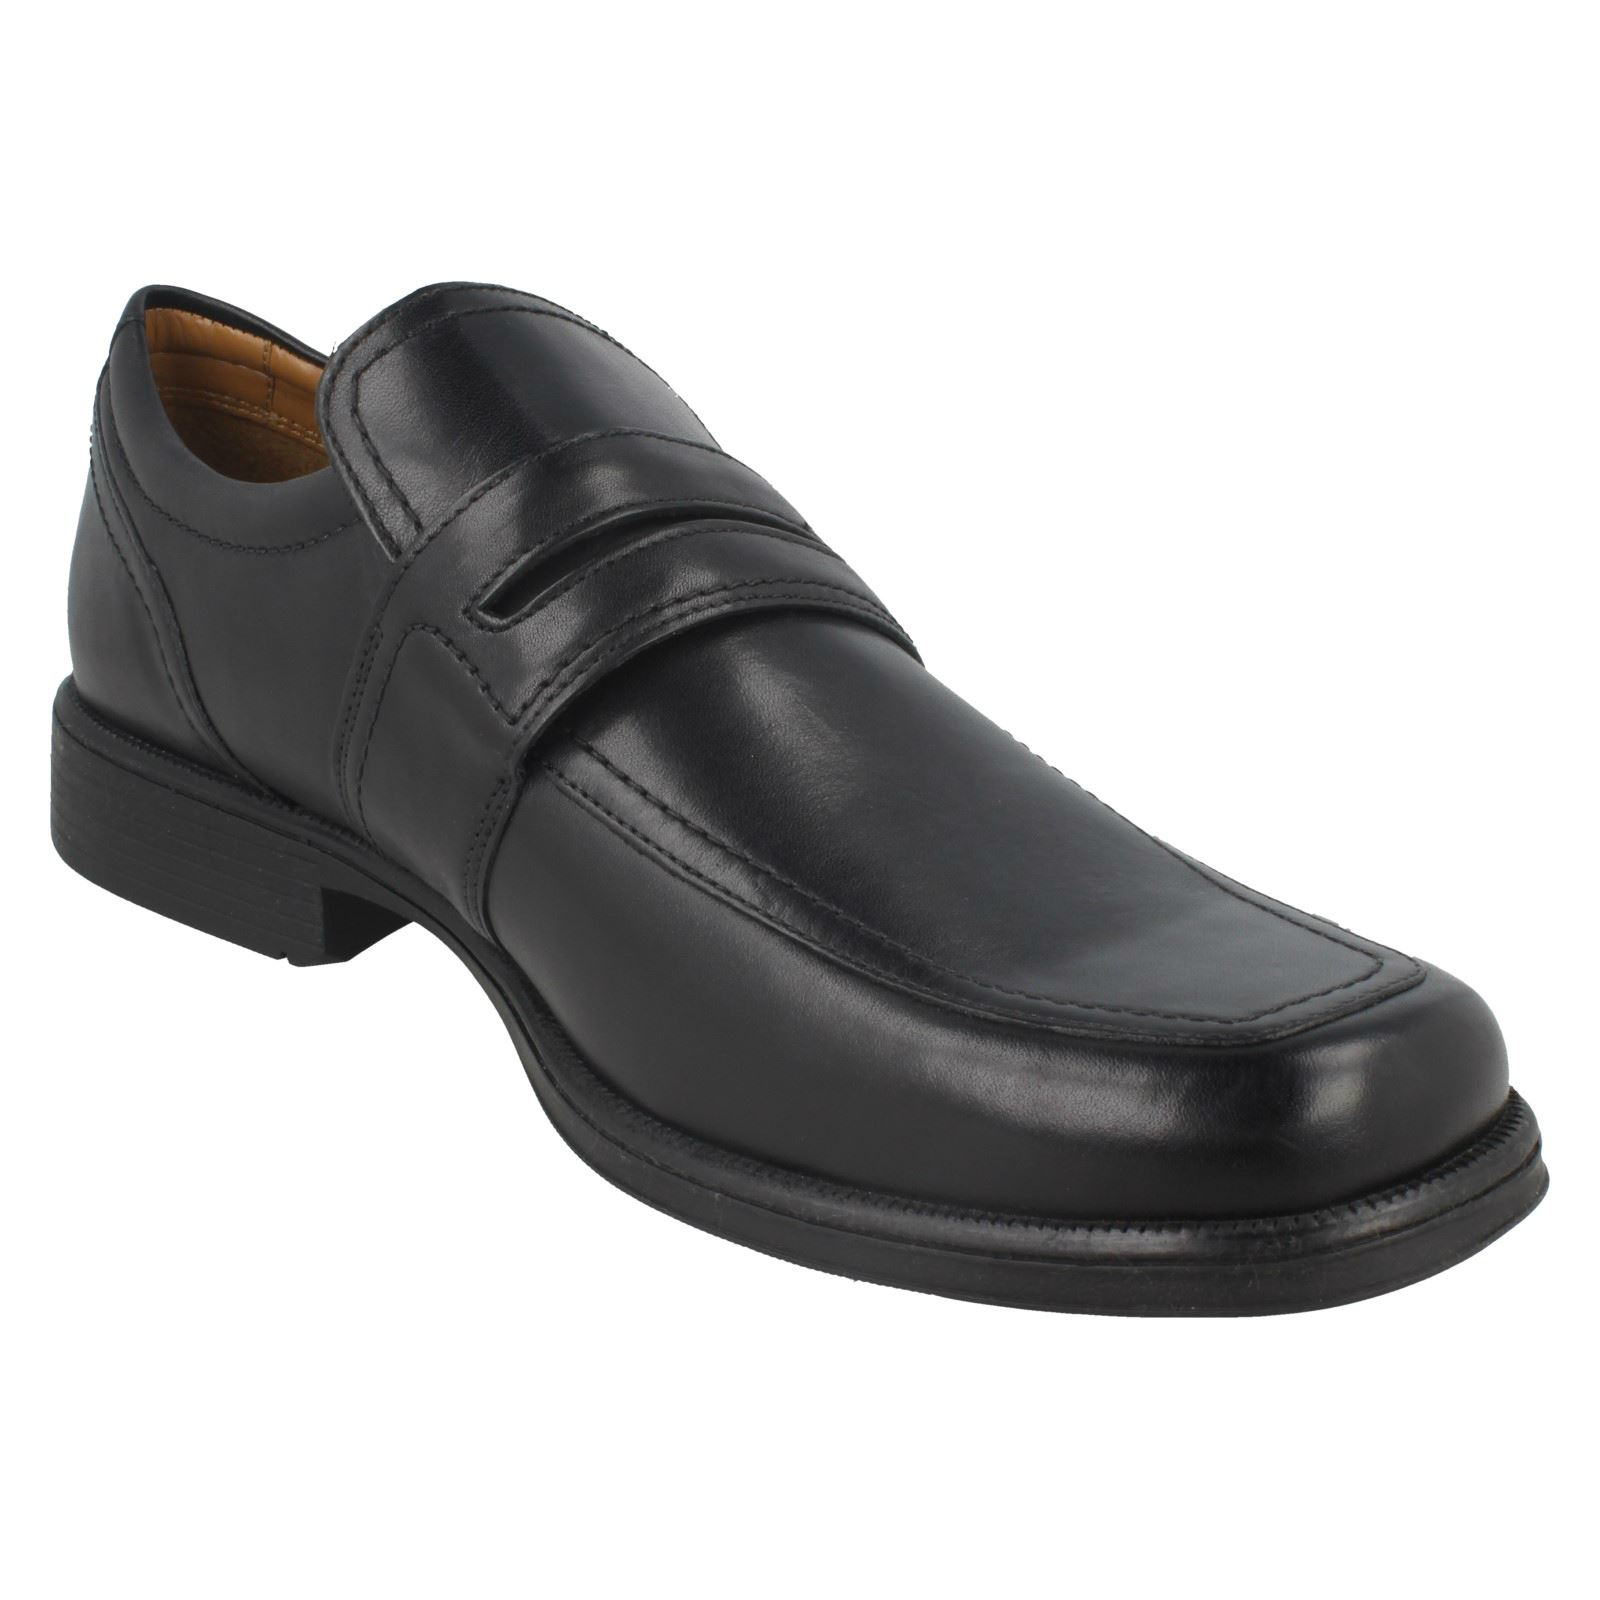 Clarks     Herren Formal Schuhes Huckley Work 8fcfb9